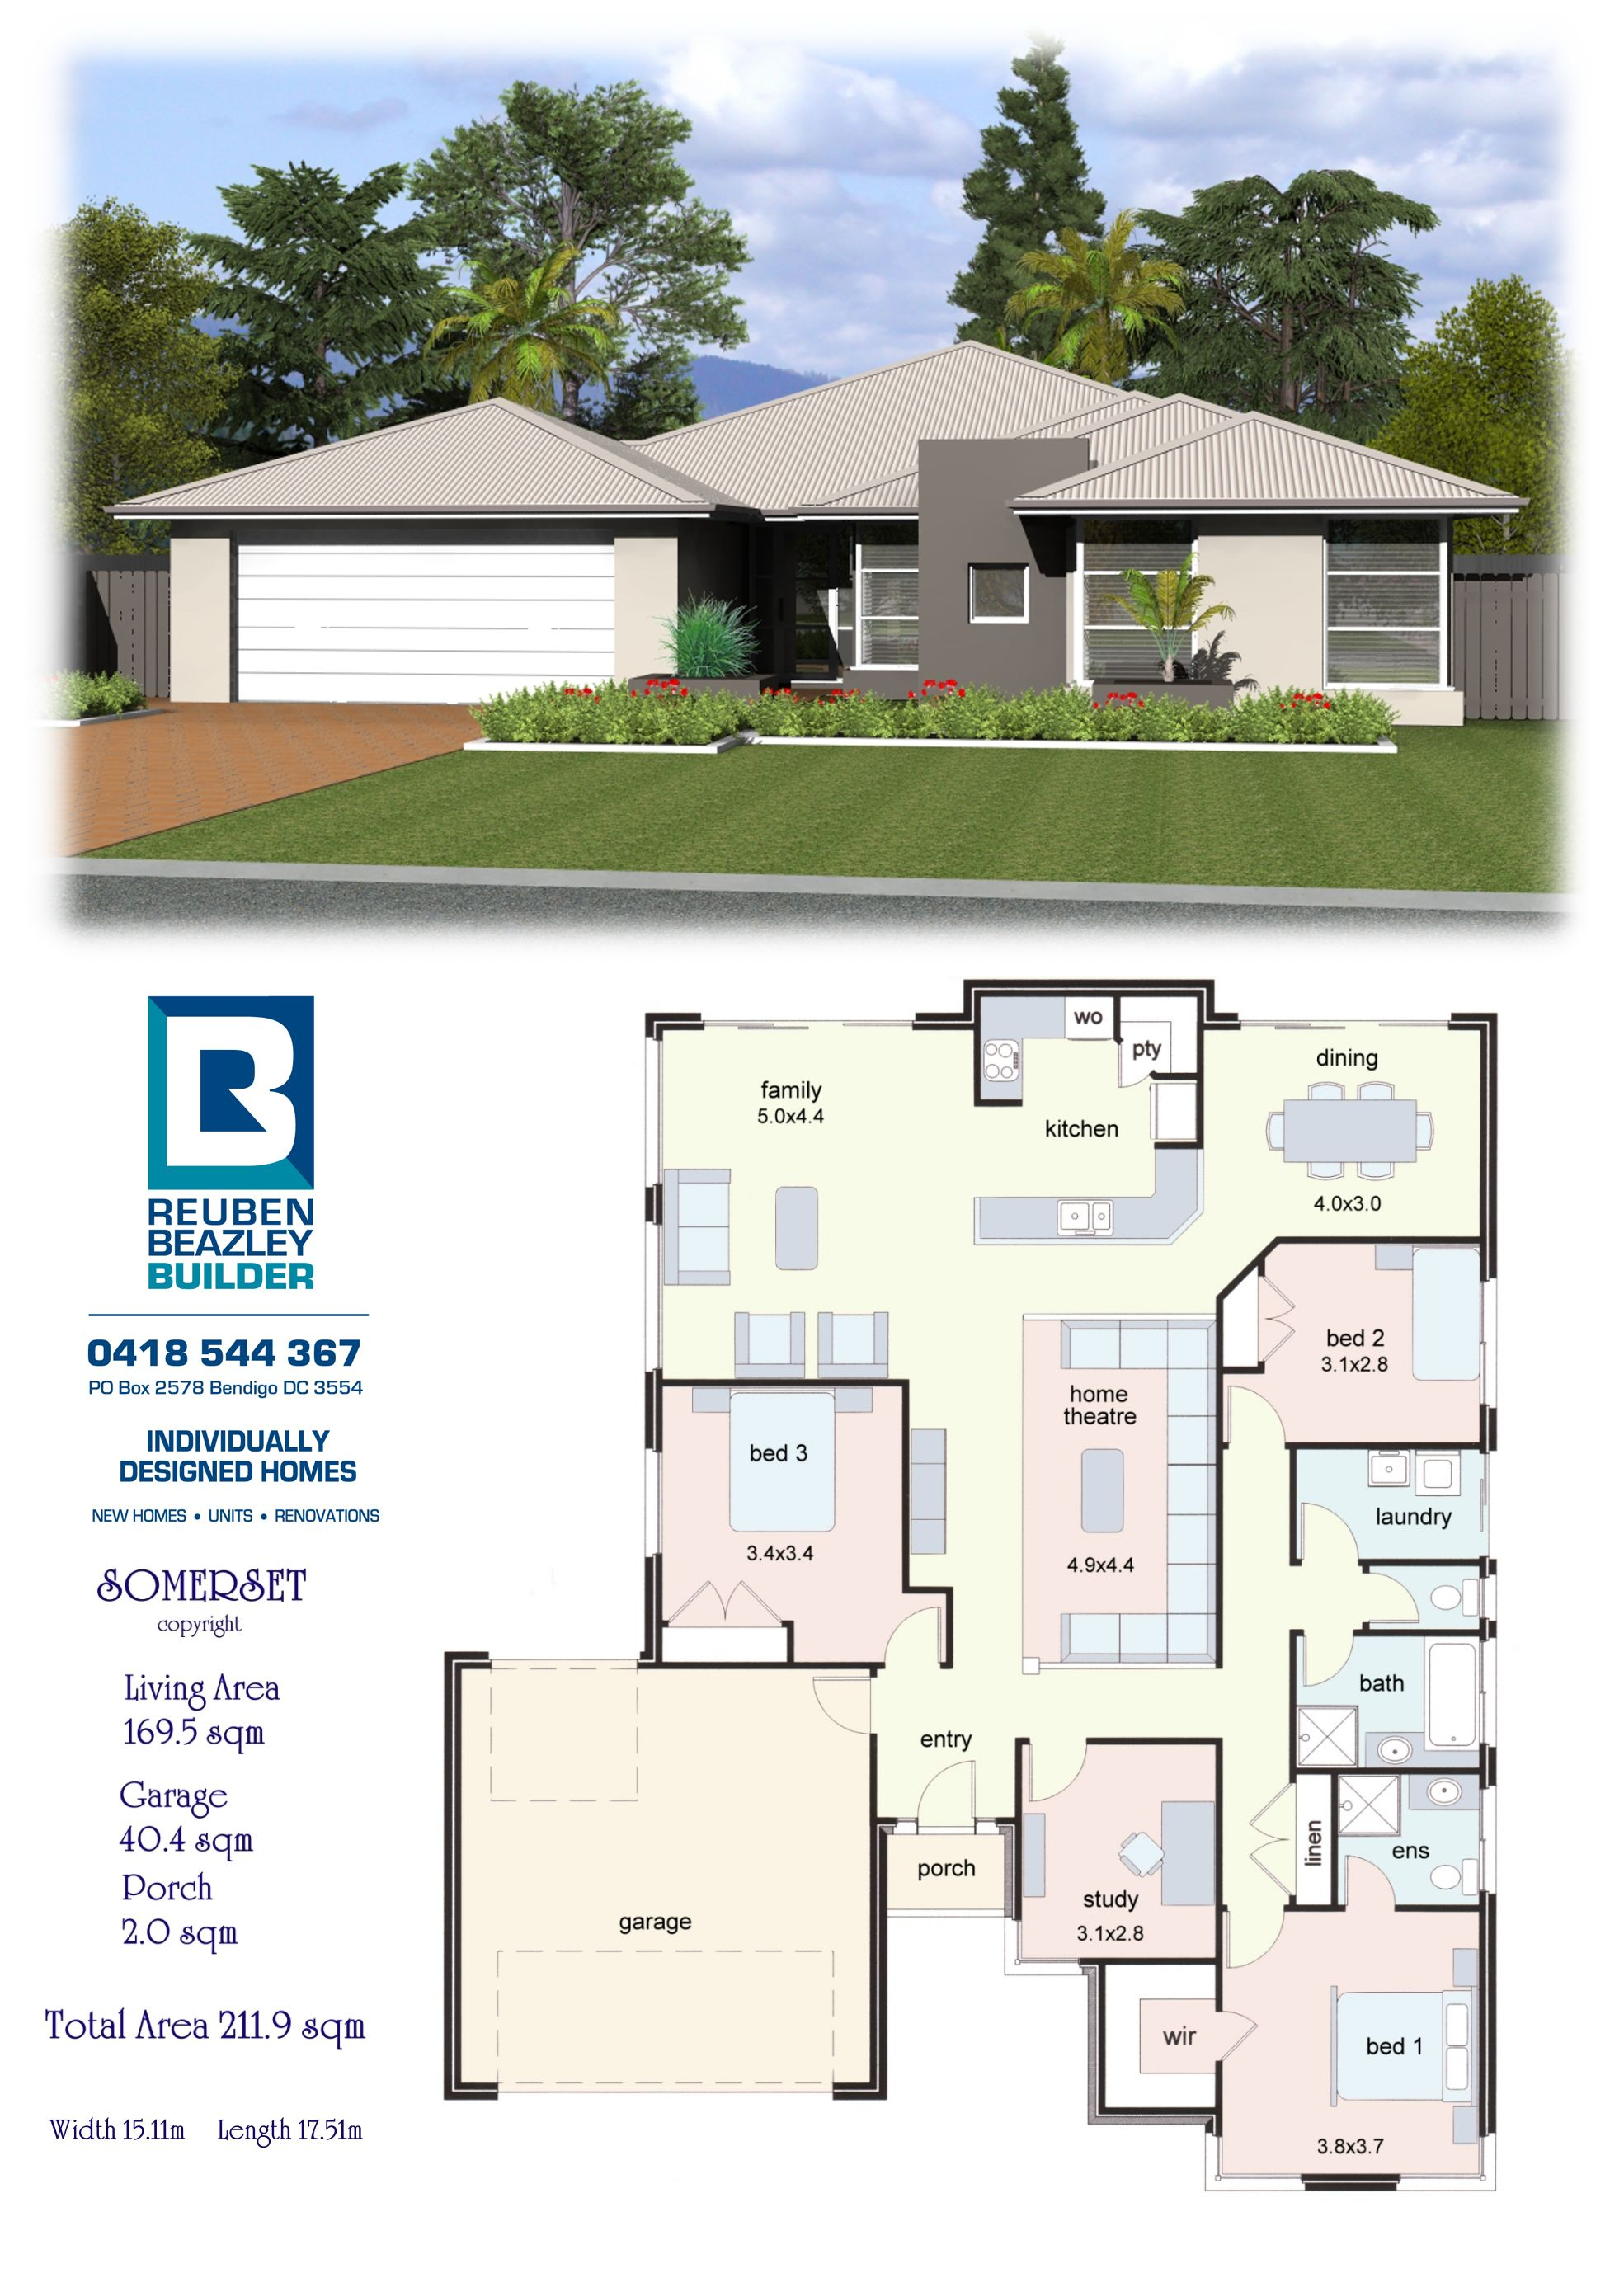 The Somerset House Construction Plan My House Plans House Plan Gallery